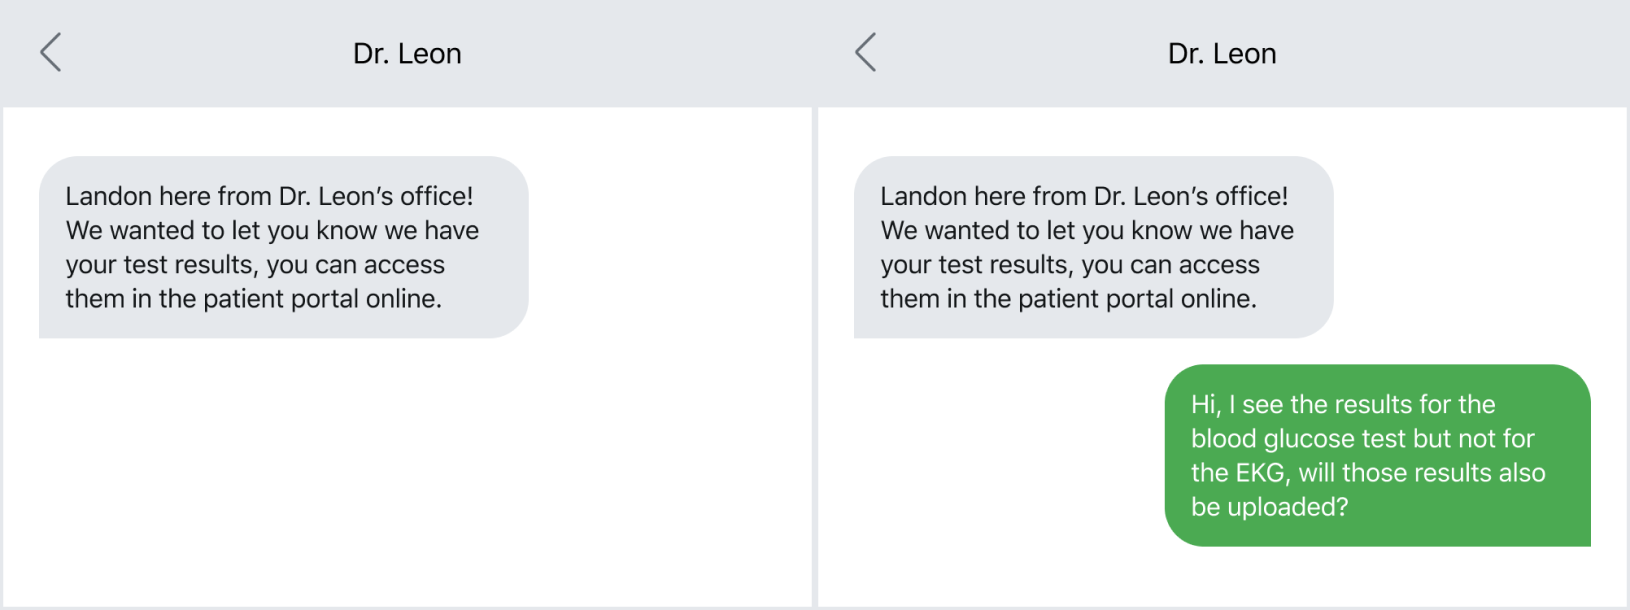 Examples of HIPAA-compliant and non-compliant text messages